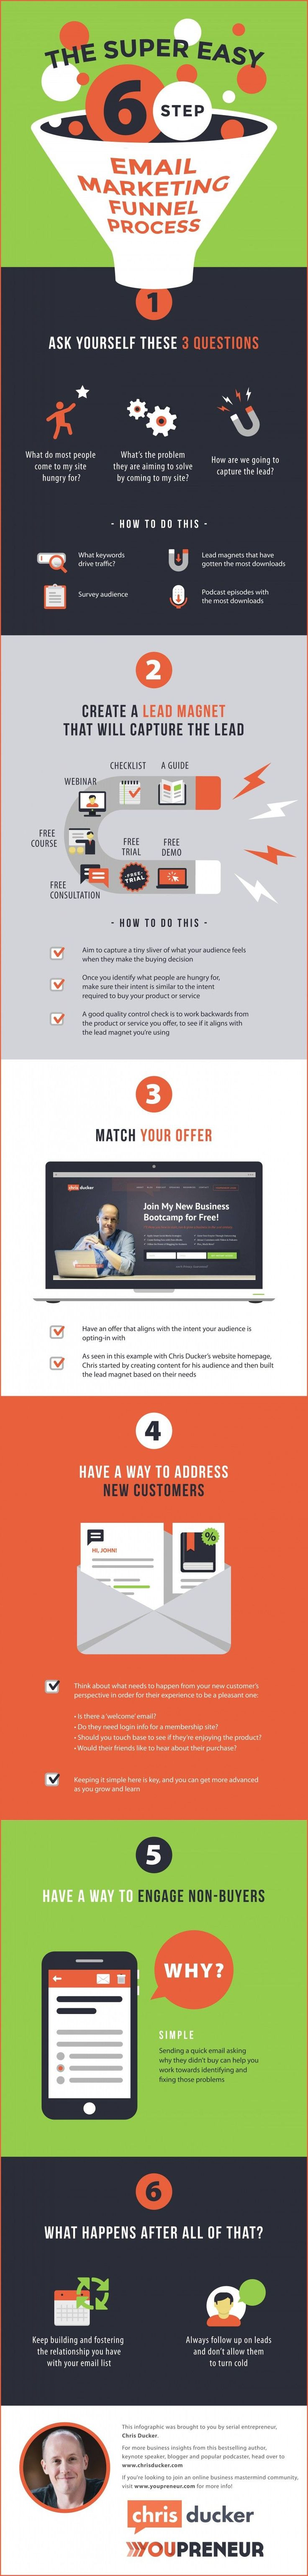 My Awesome Landing Page - Powered by ClickFunnels.com